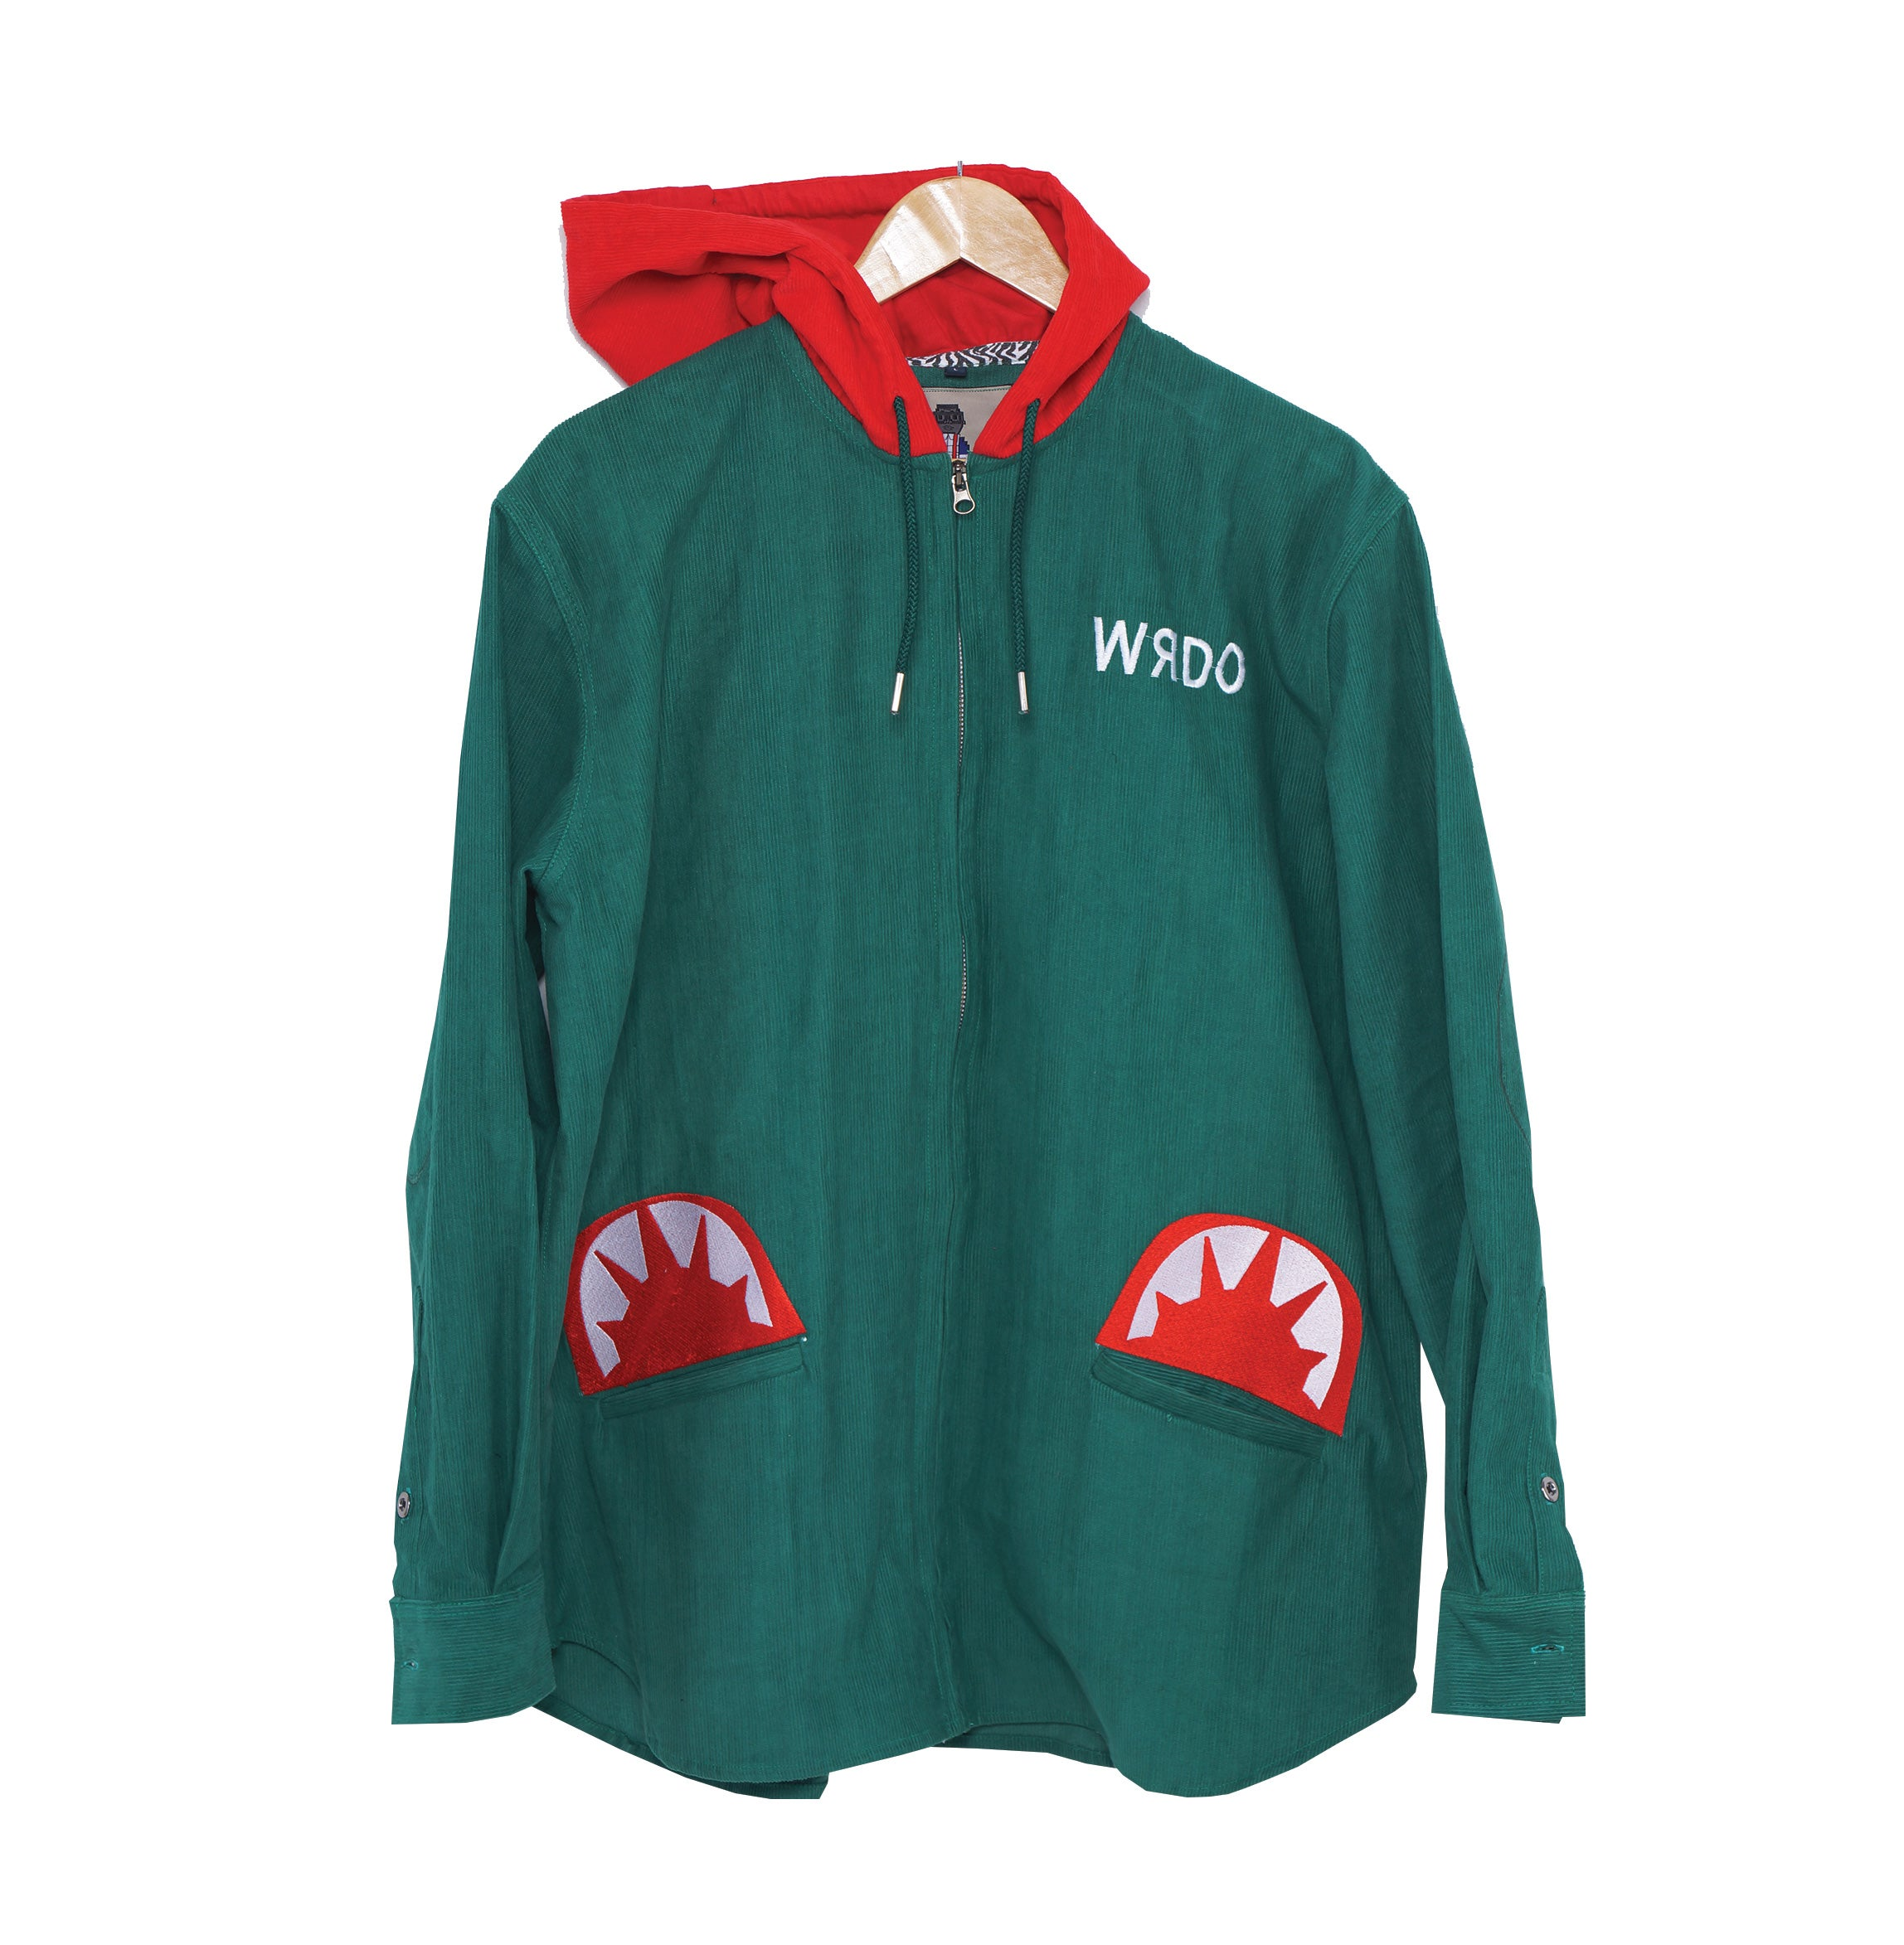 Le Corduroy Shark Teeth Hoodie (Green) / RichWierdo Clothing